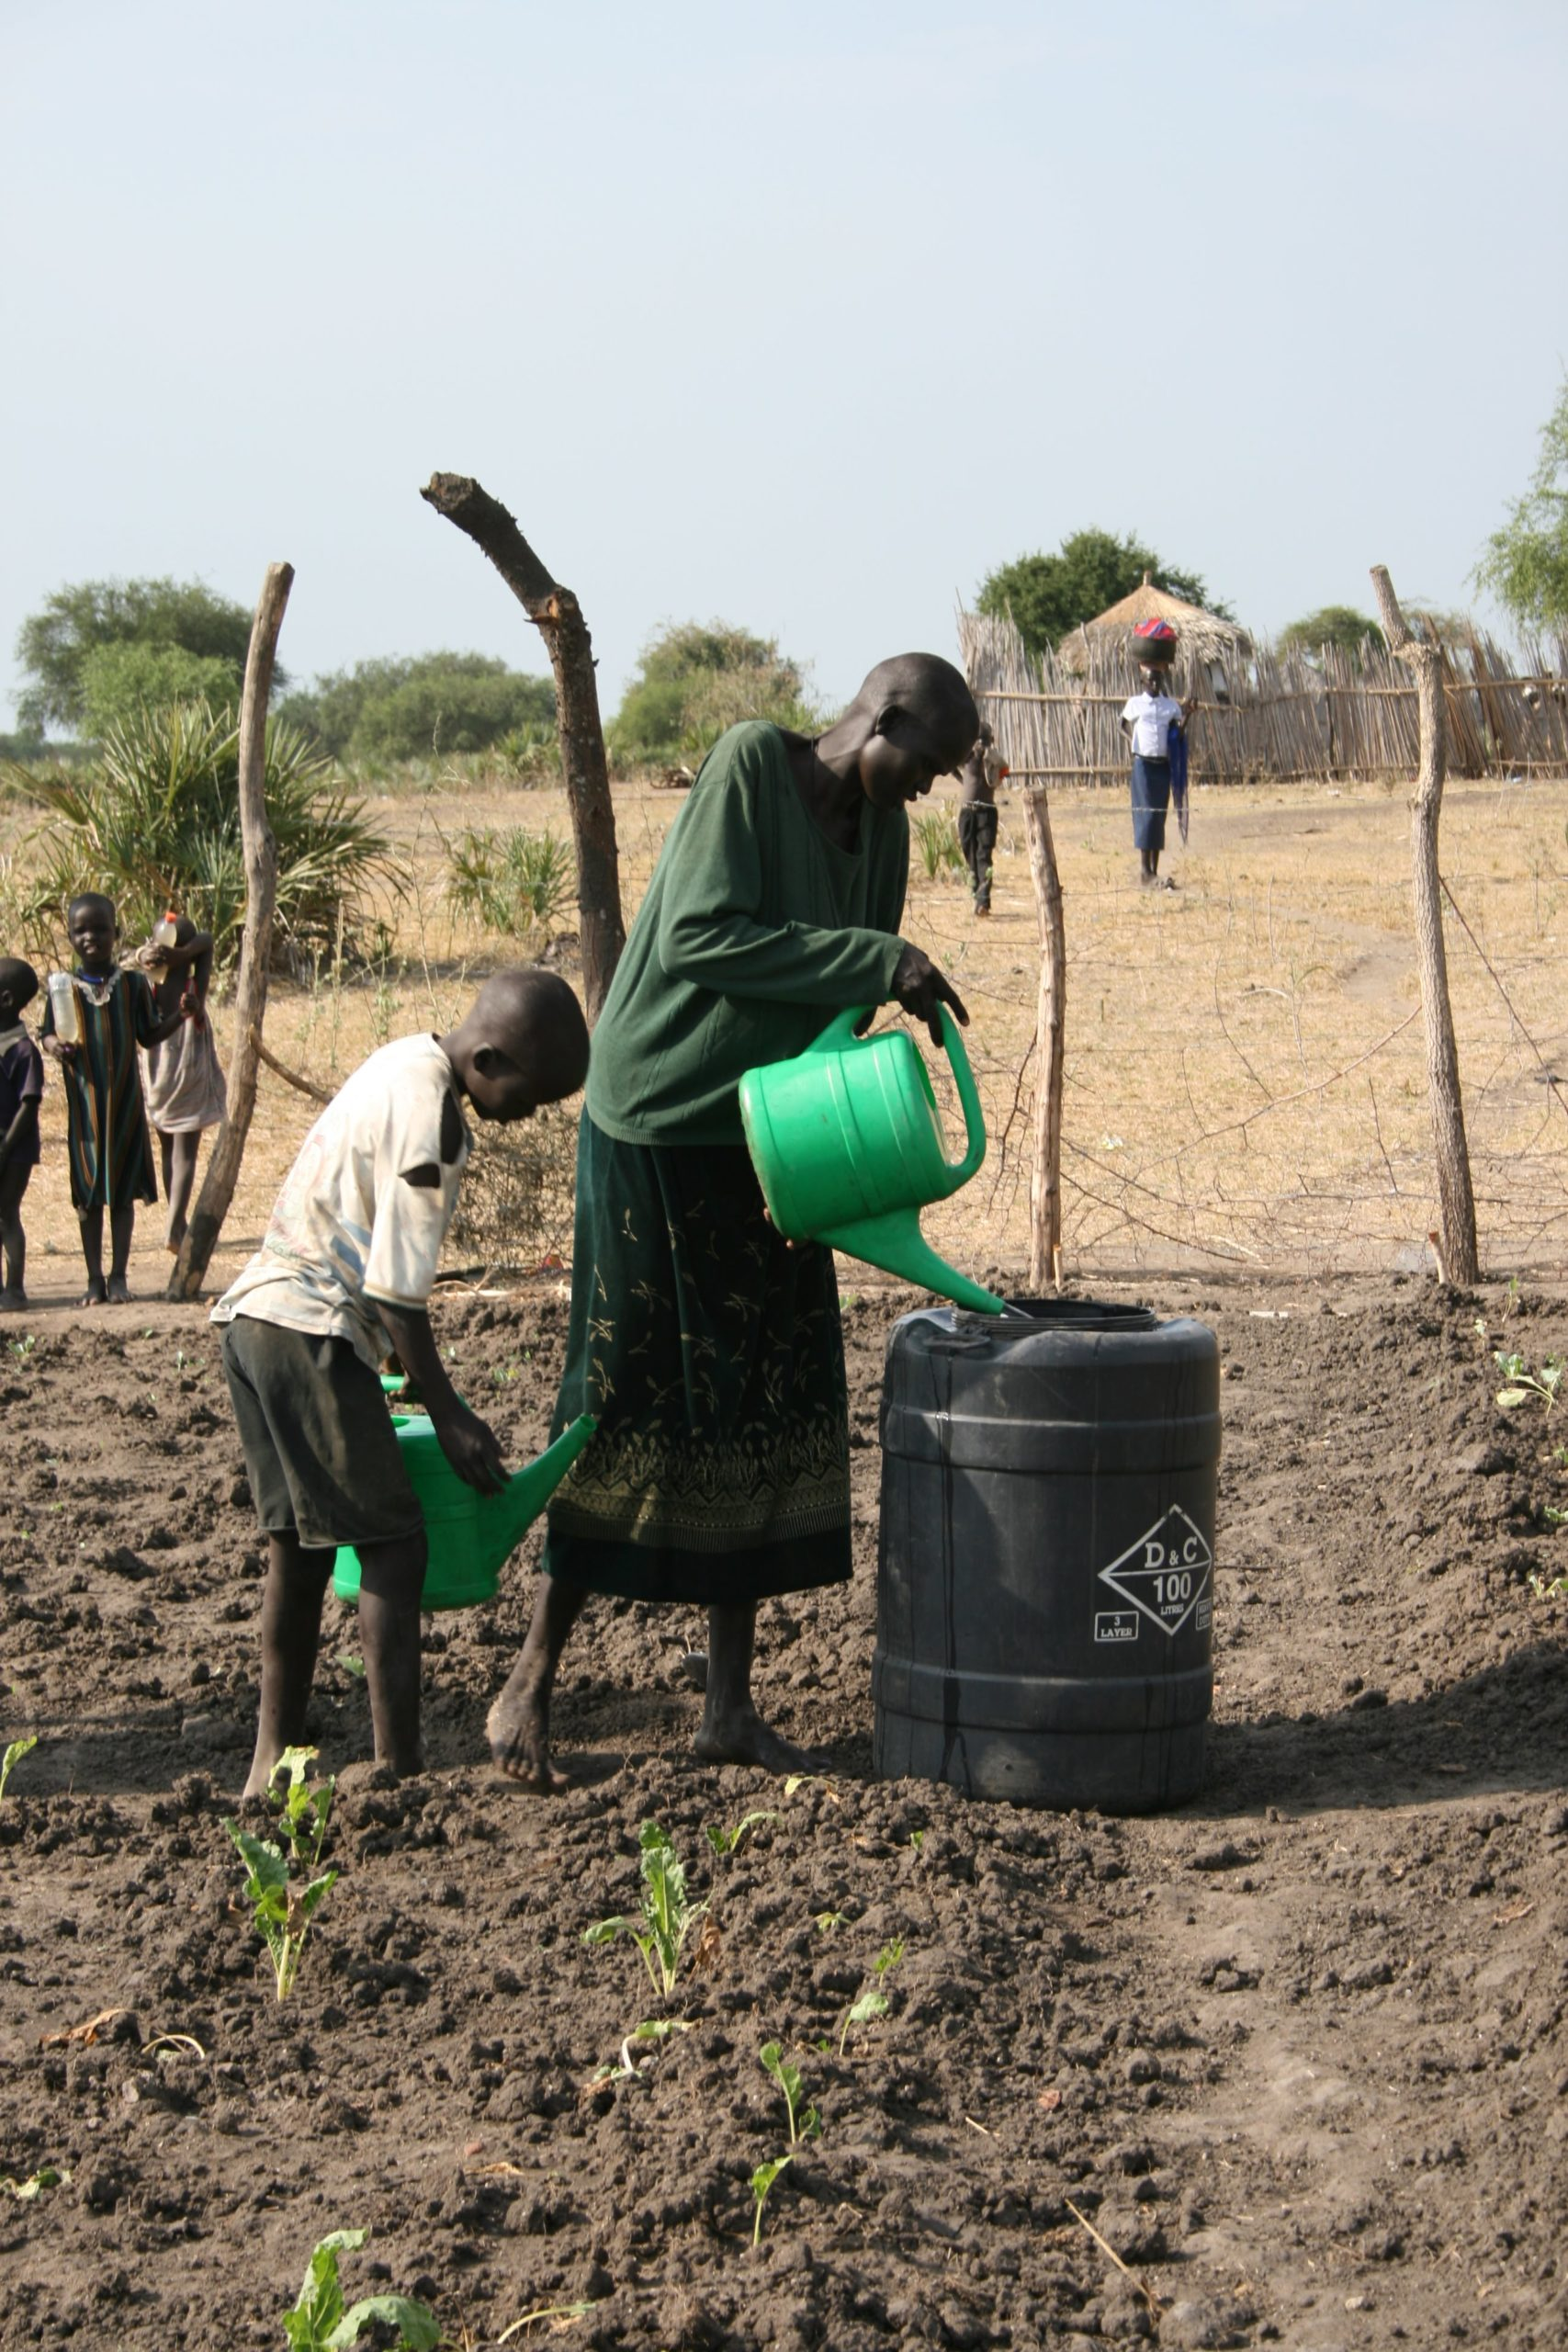 A woman and a boy use green plastic watering cans to water shoots in one of the project's gardens.